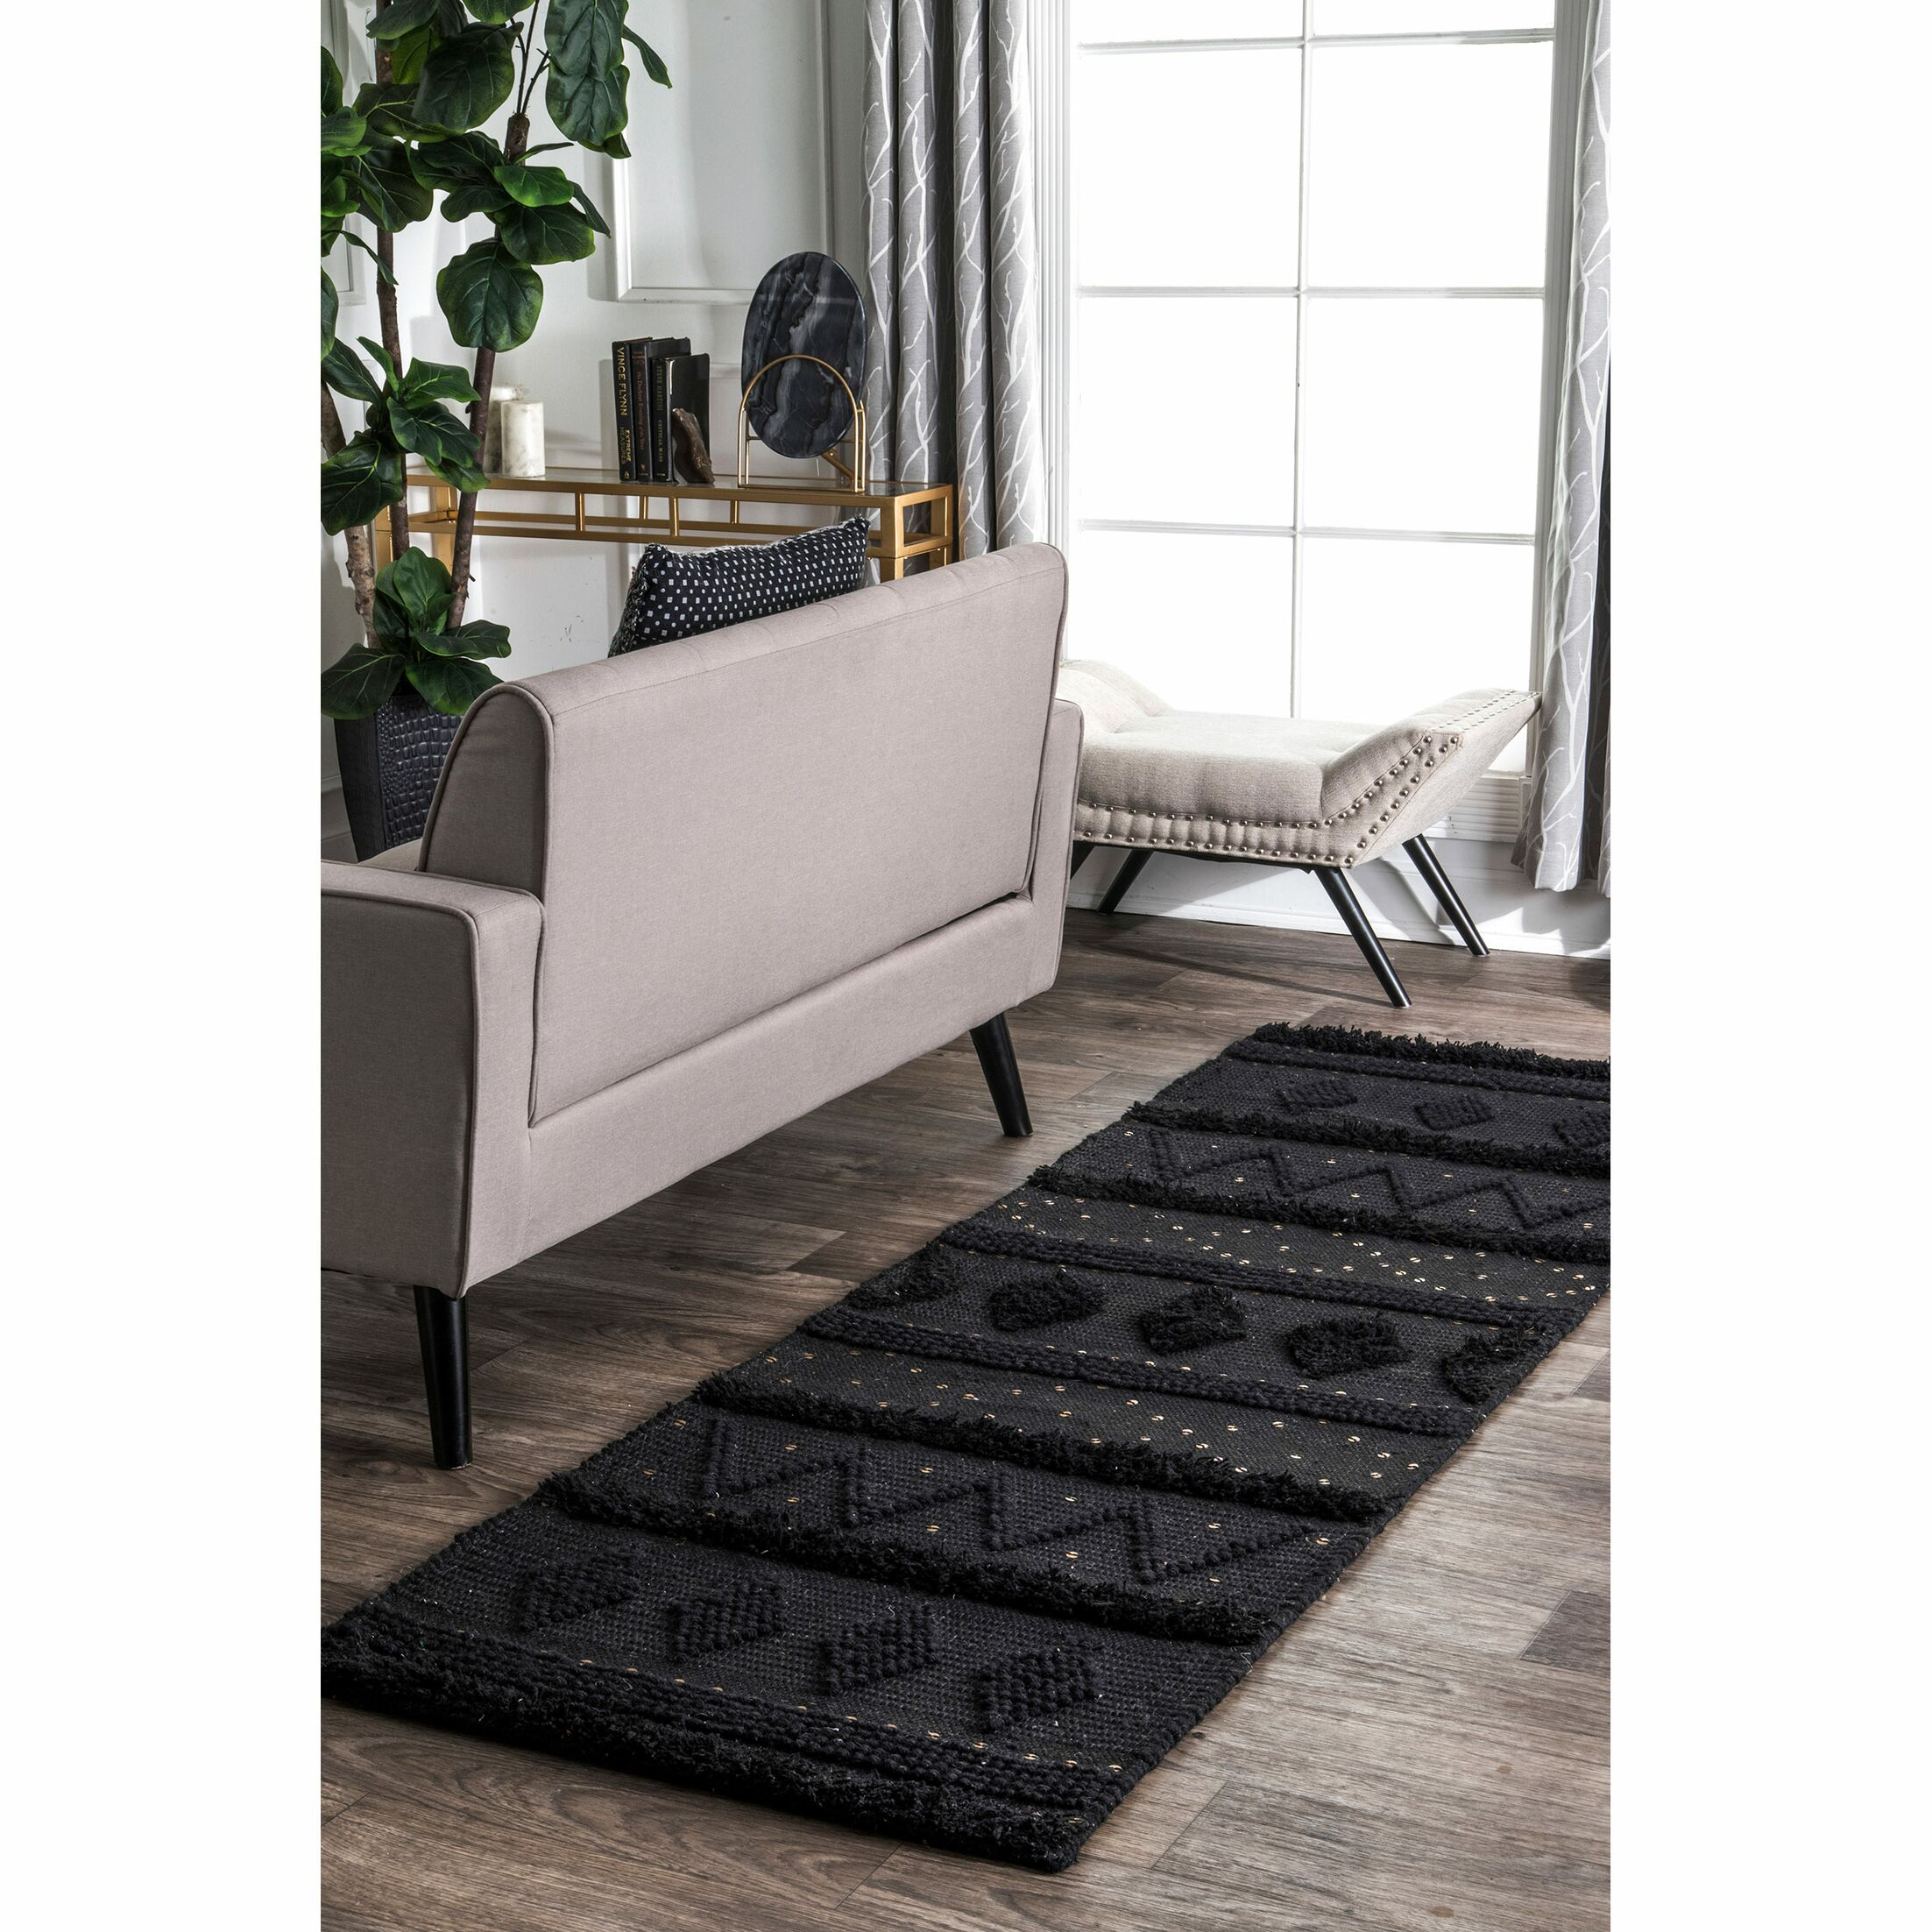 Caverly Hand-Woven Wool Black Area Rug Rug Size: Rectangle 6' x 9'